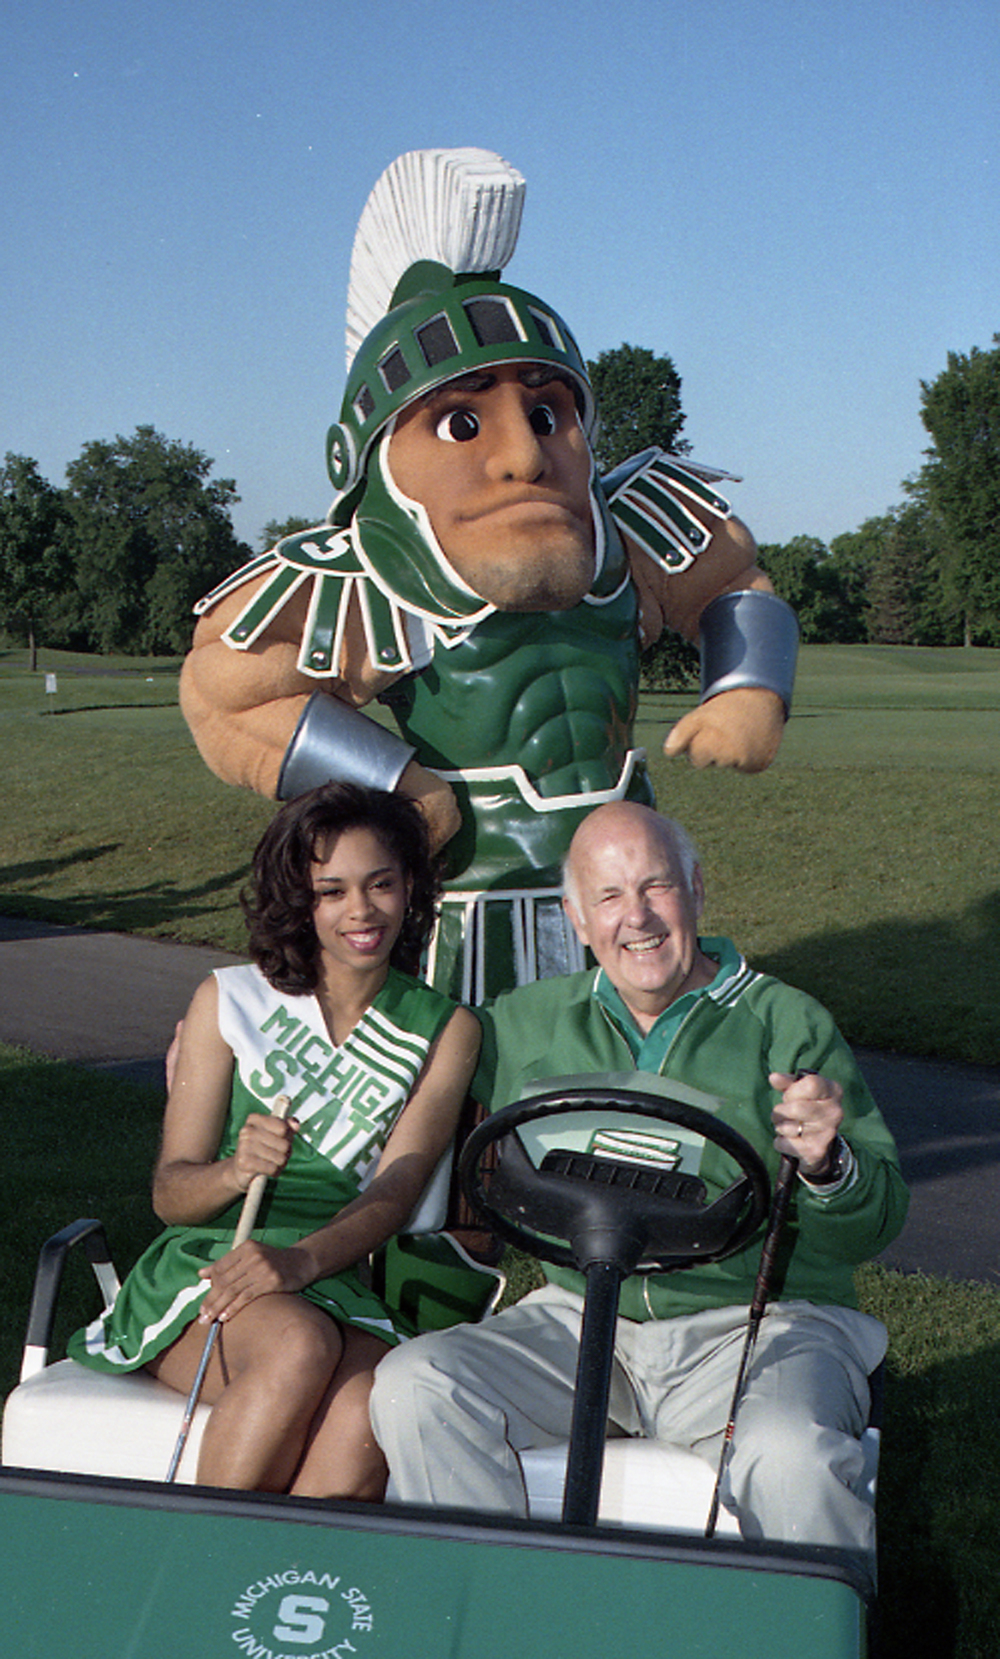 Guyer poses with Sparty and a student during a golf outing. Photo courtesy of MSU Archives.